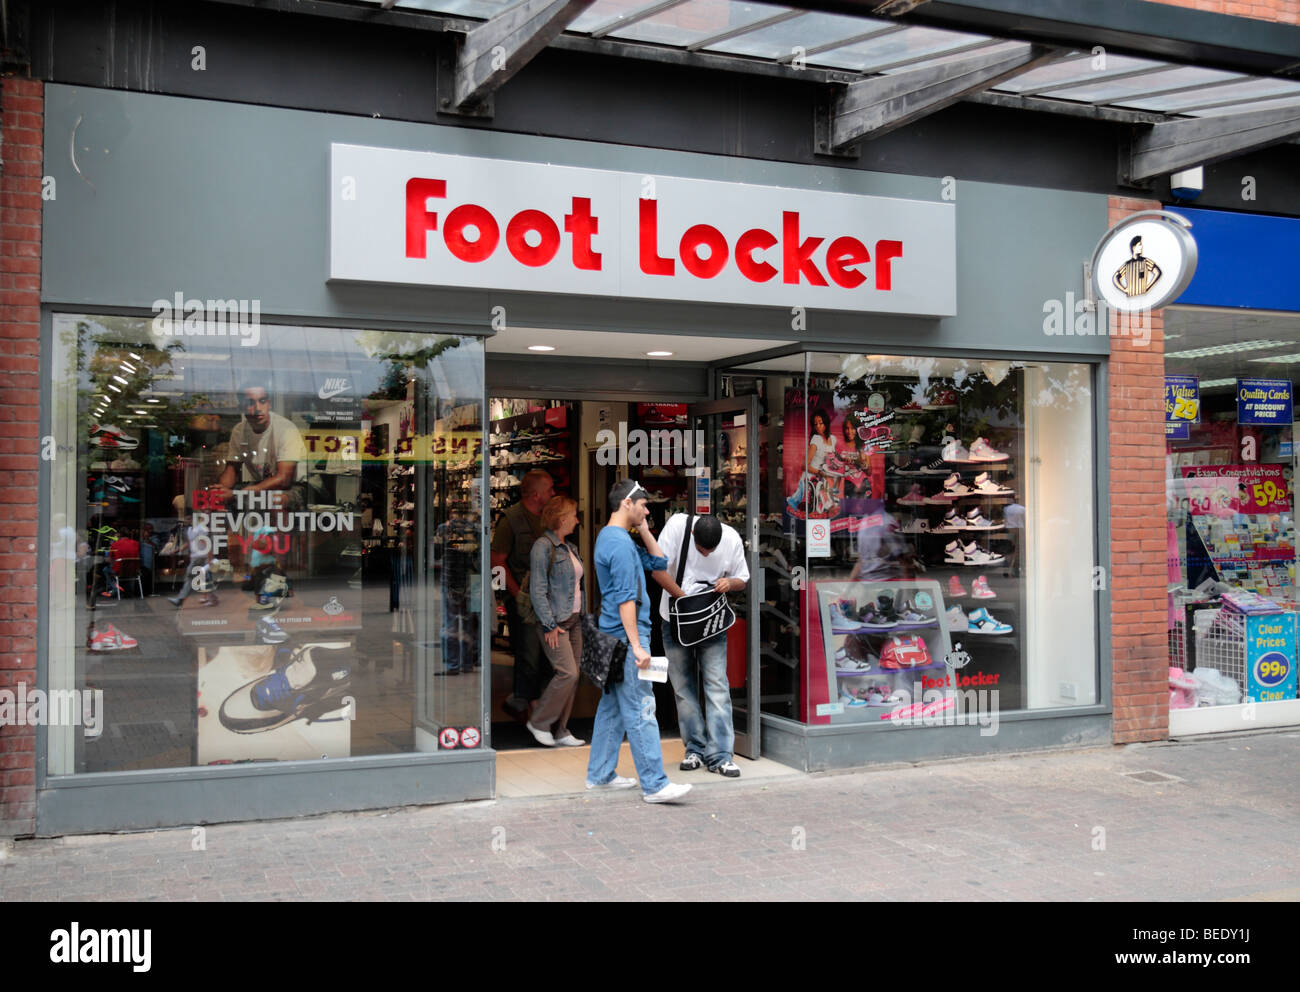 Foot Locker. M likes. Welcome to Foot Locker! Check out the latest kicks and news from our world. Tell us what you think, but let's keep it clean.